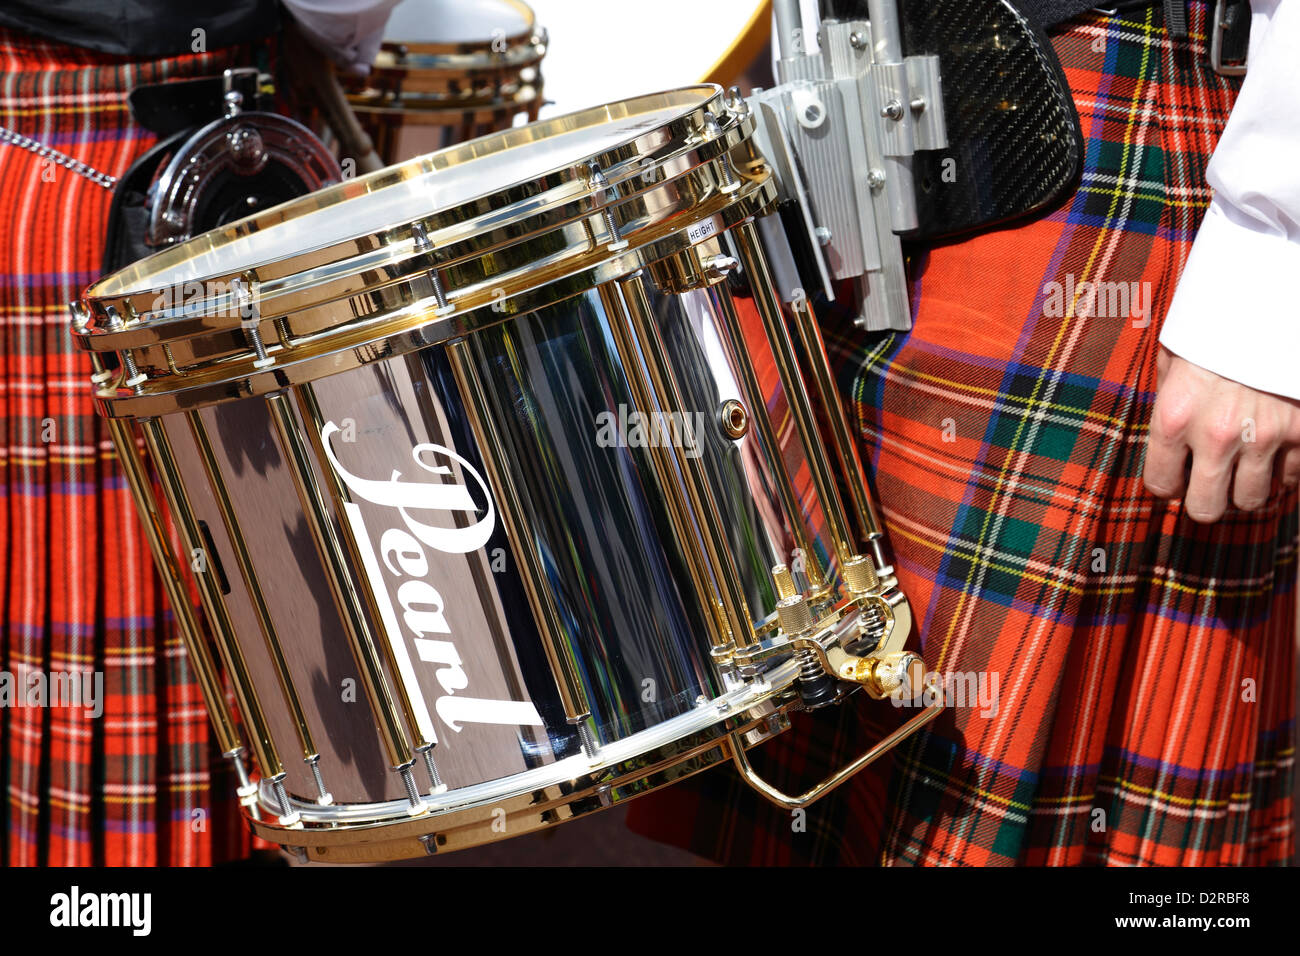 A drummer from the Strathclyde Police Pipe Band at the Piping Live Event, Glasgow, Scotland, UK - Stock Image